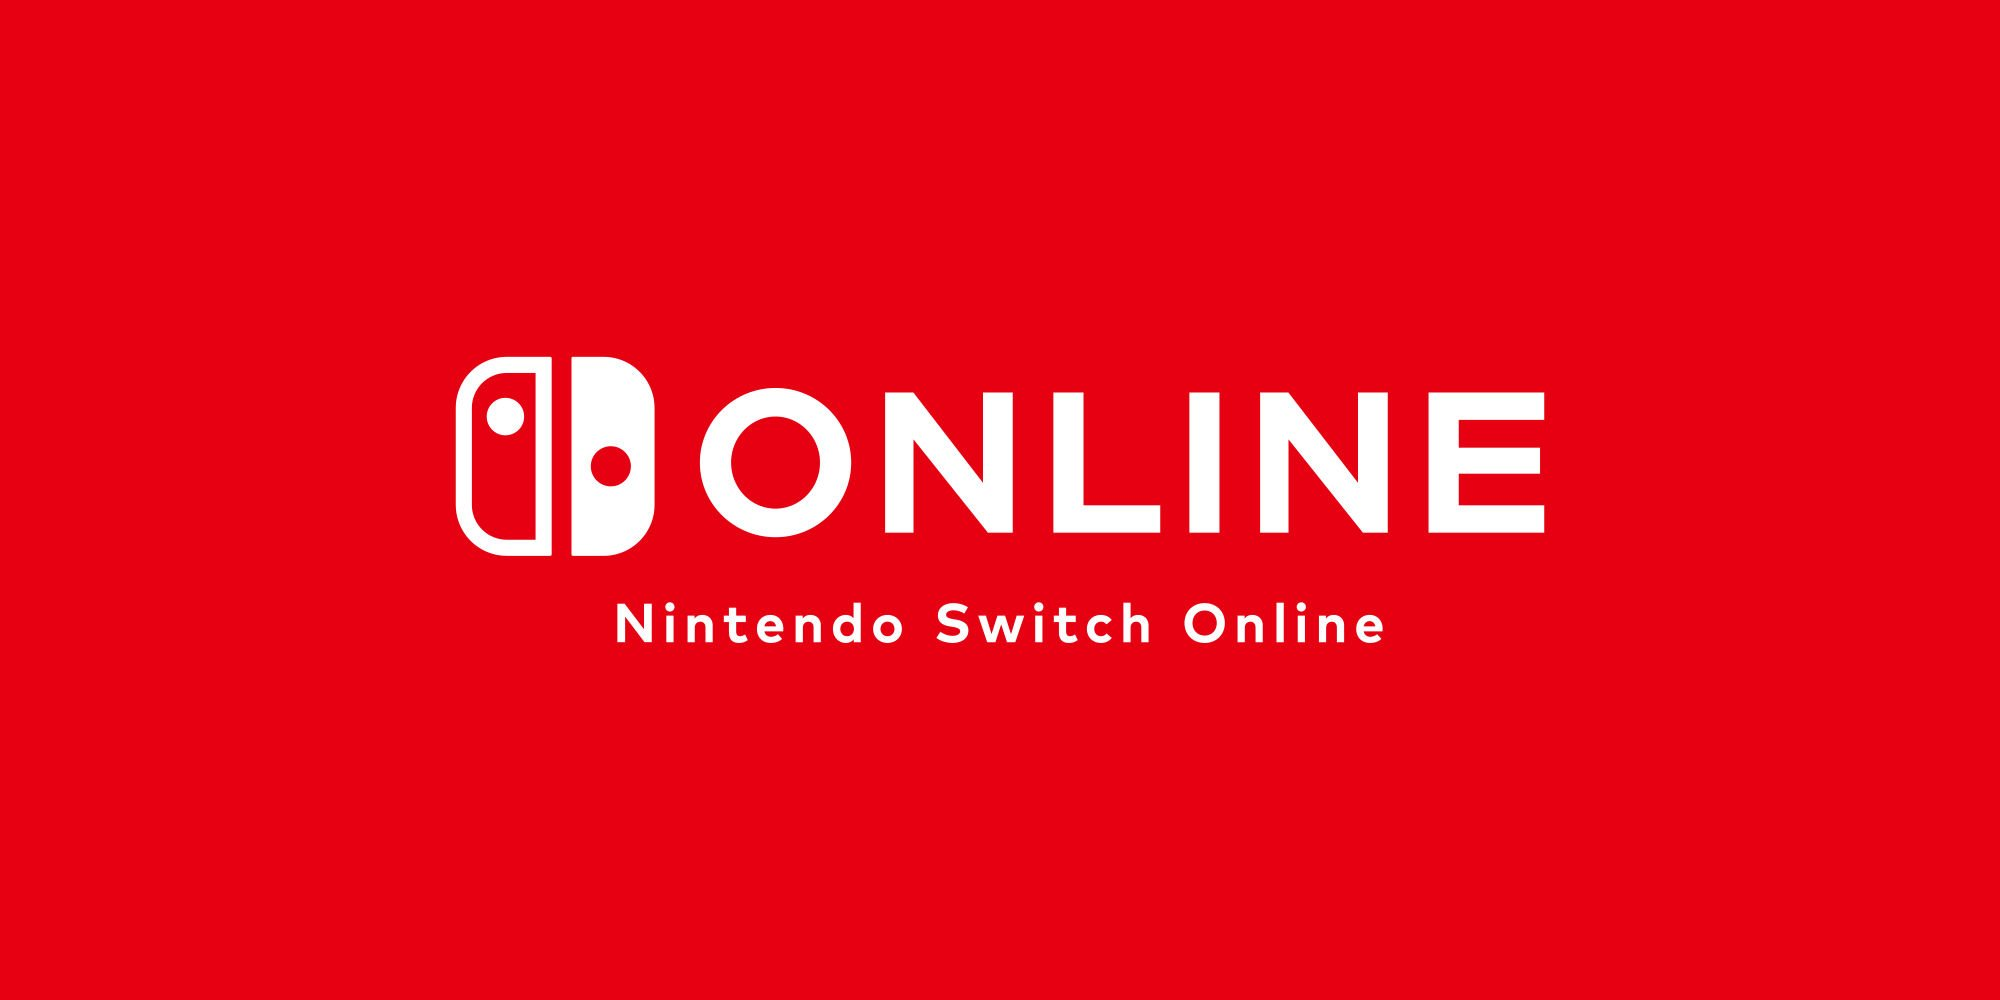 Nintendo will allow you to convert your solo Switch Online membership into a family plan next month